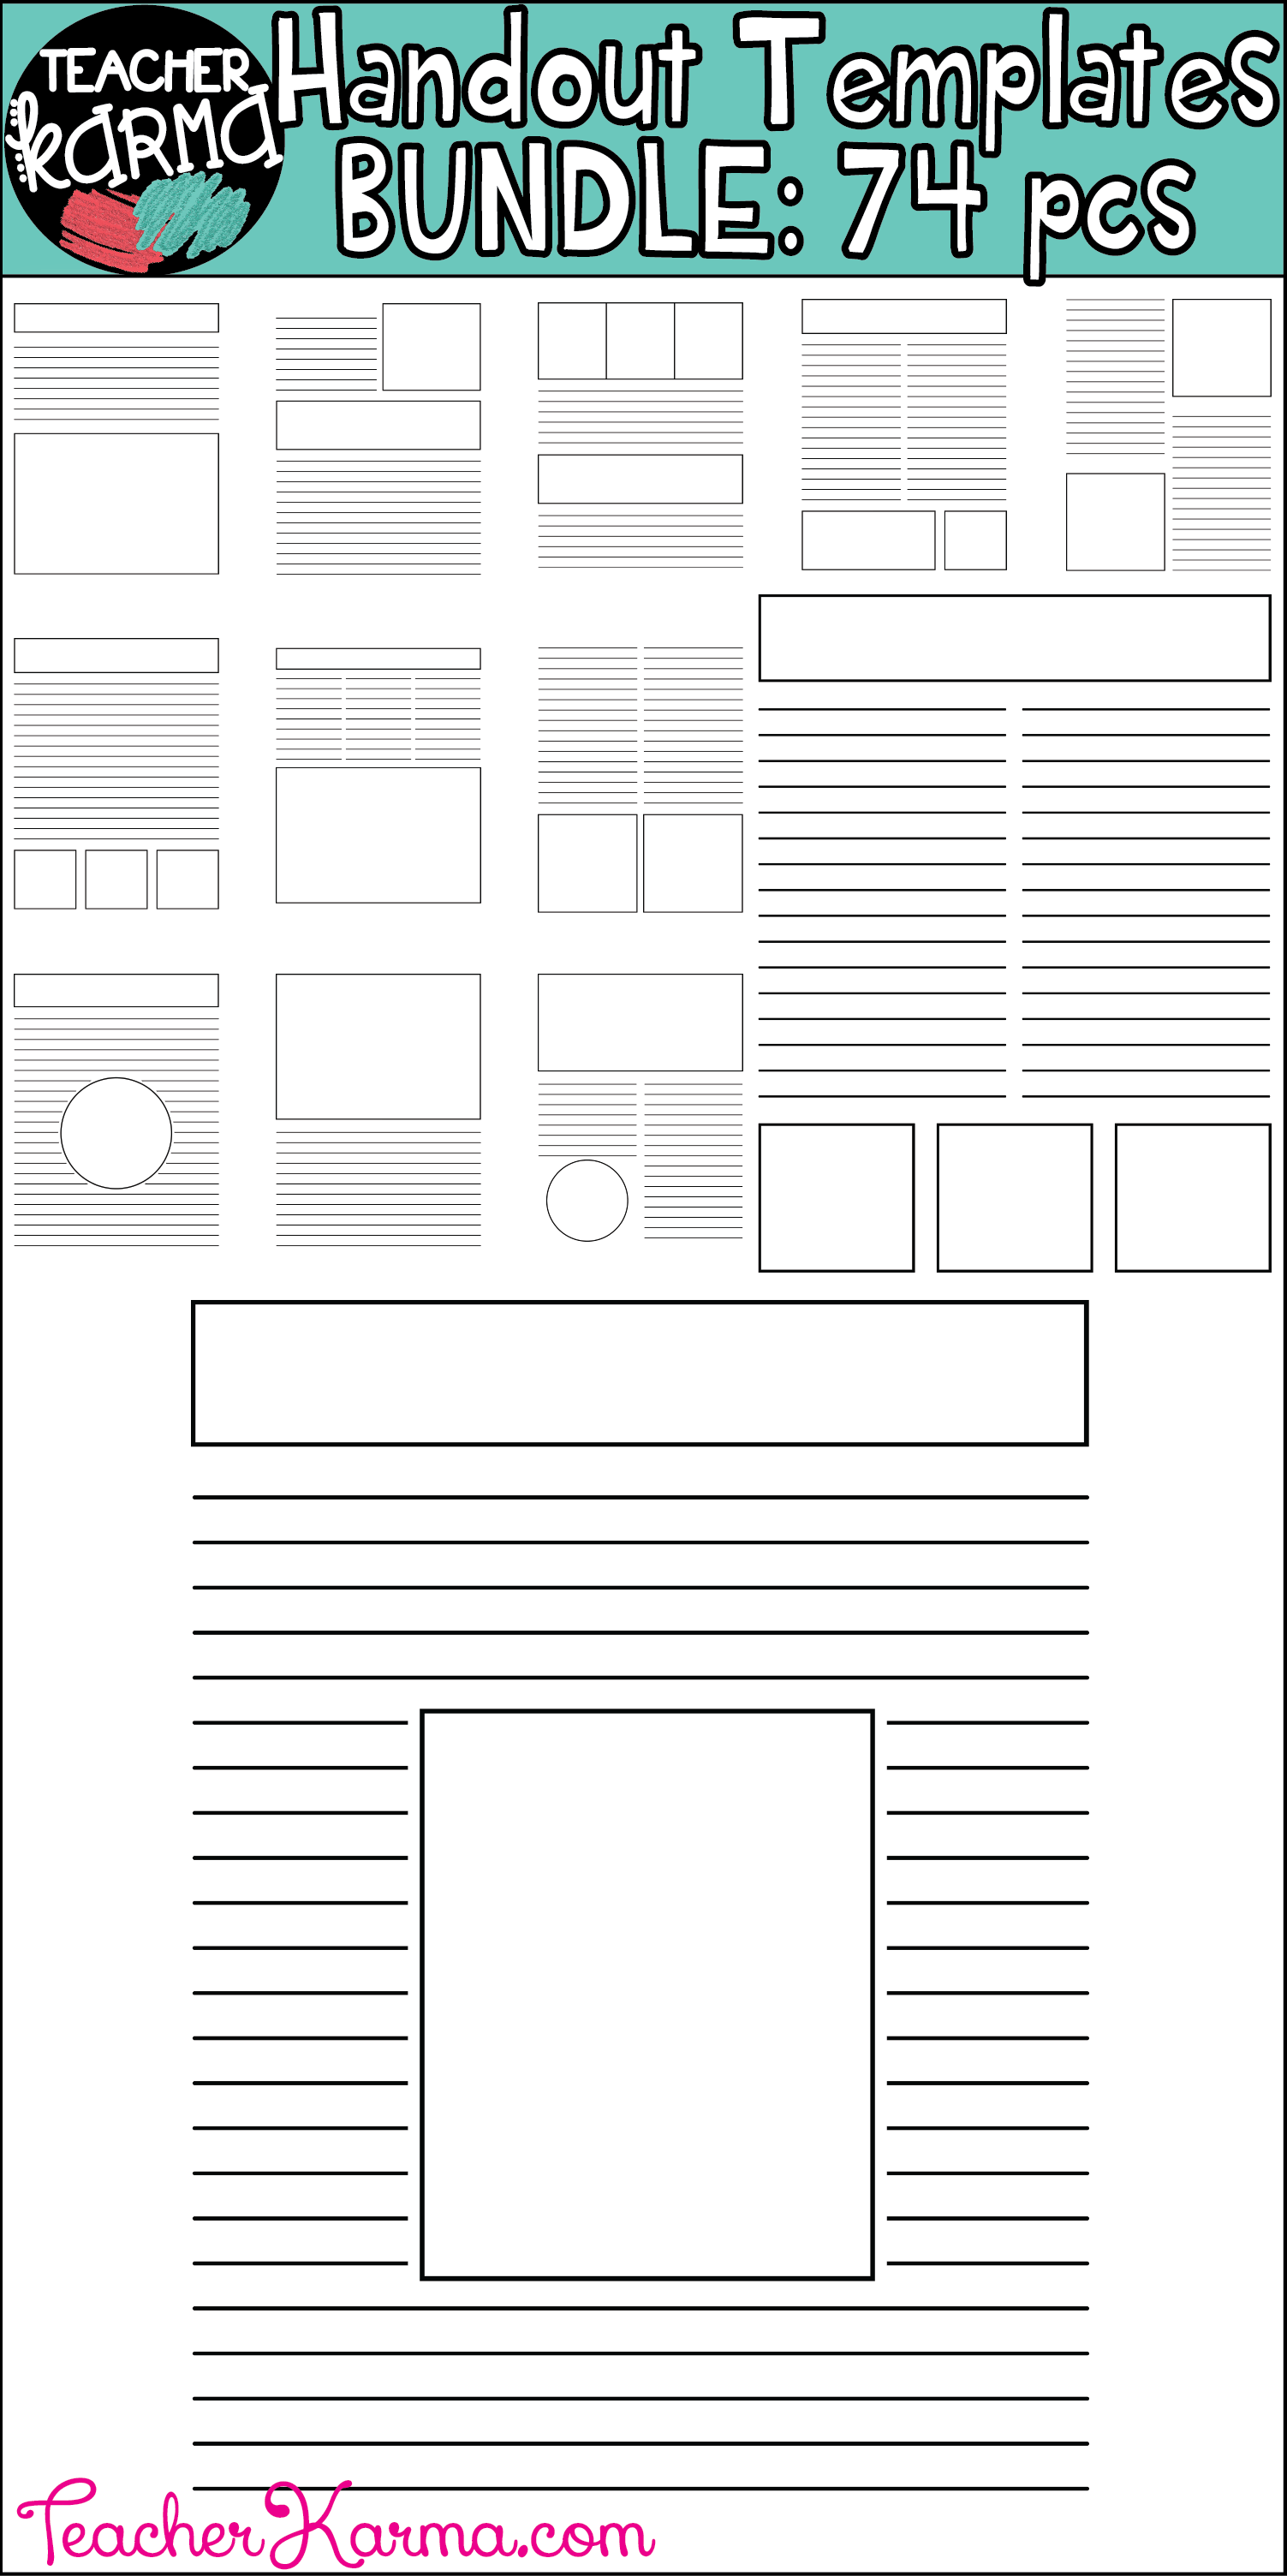 Handout / Worksheet Maker Template BUNDLE: 74 pcs | Resource teacher ...